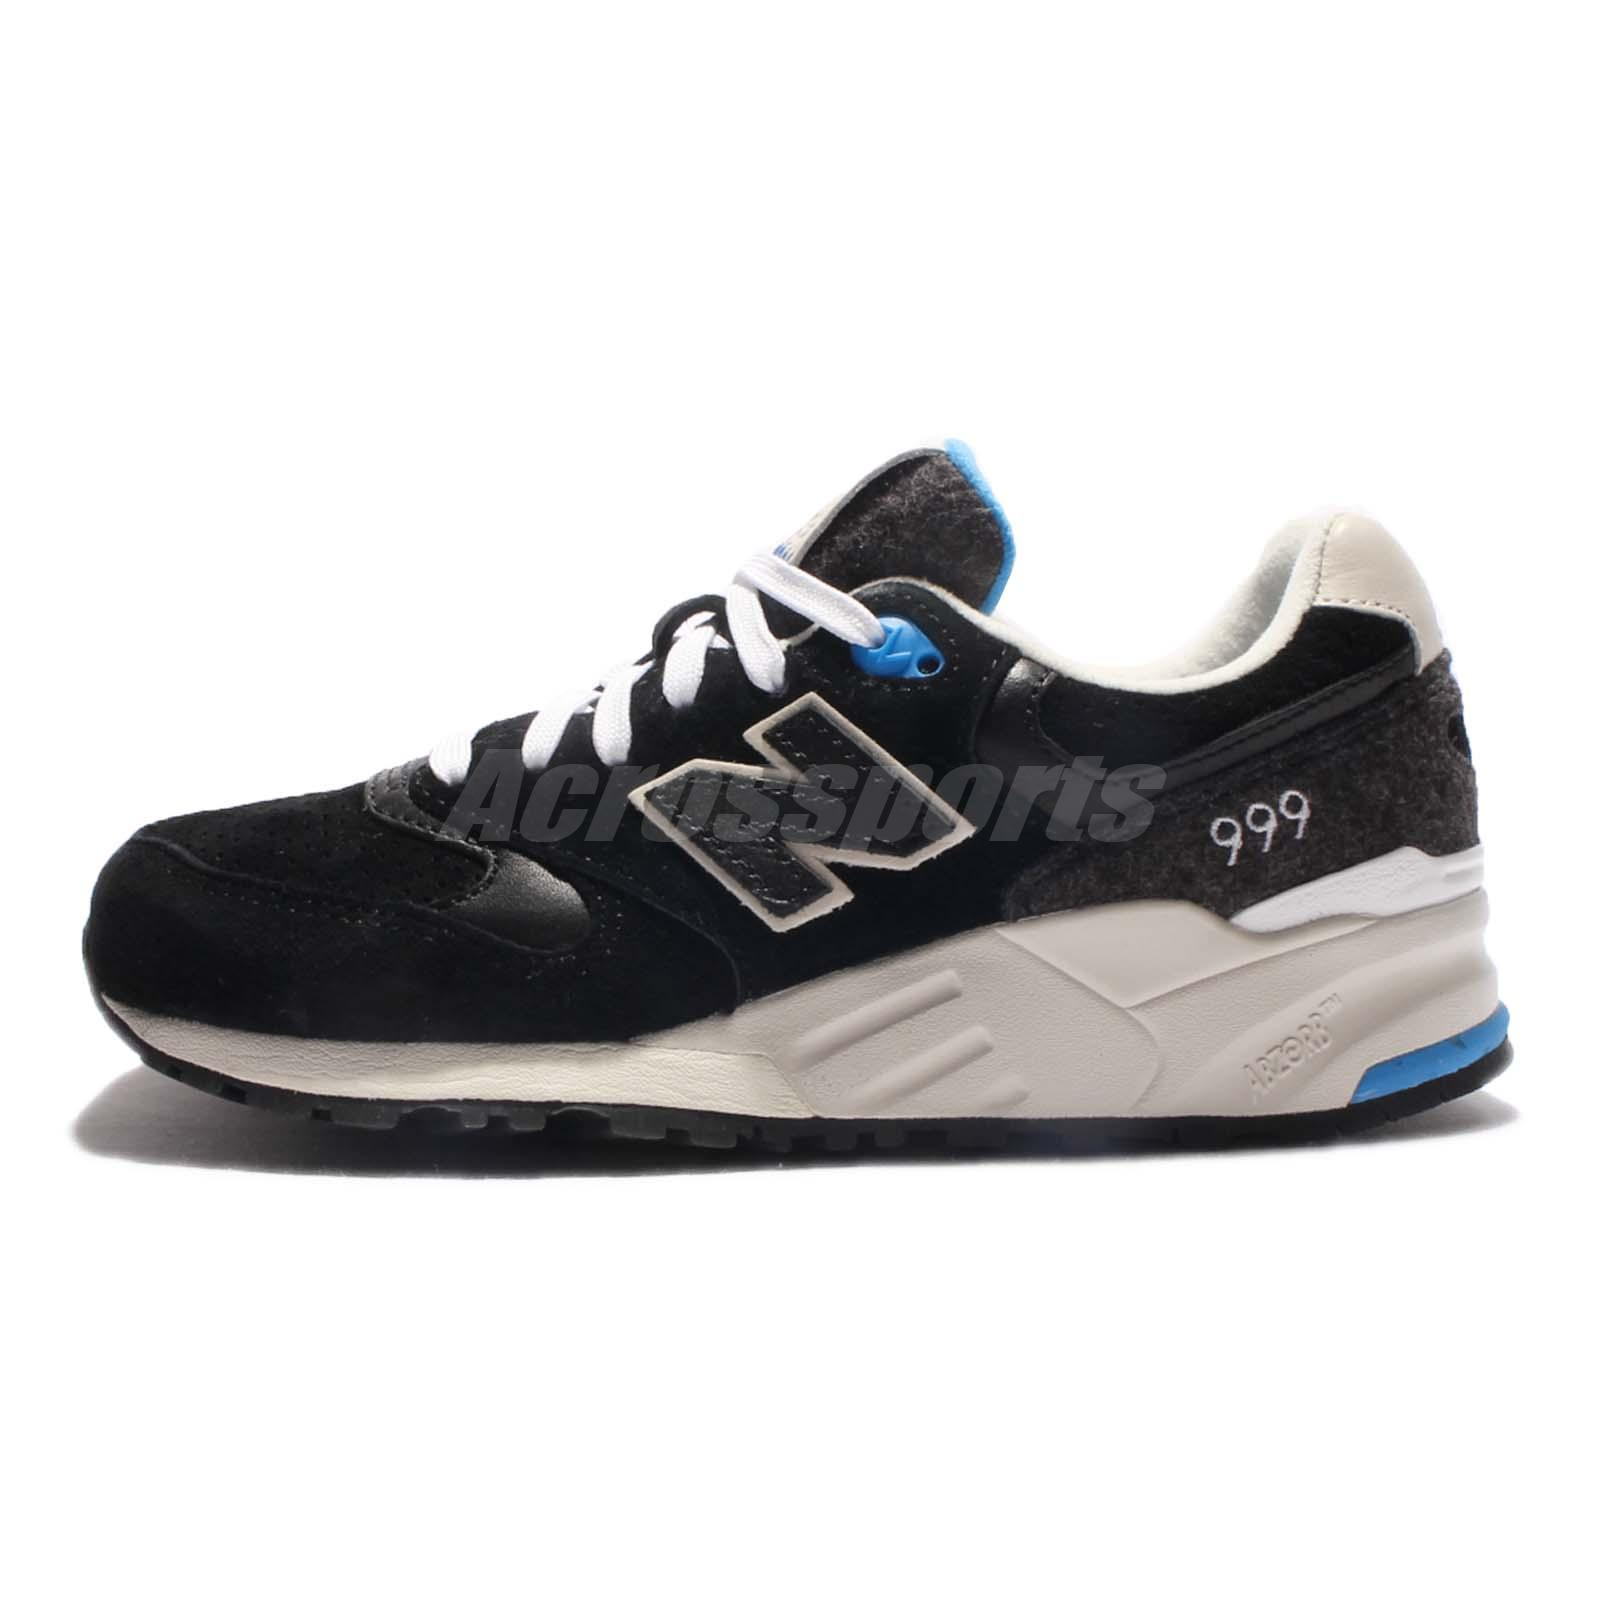 outlet store 09c51 a570b New Balance WL999MMA B Black Beige Elite Edition Women Running Shoes  WL999MMAB